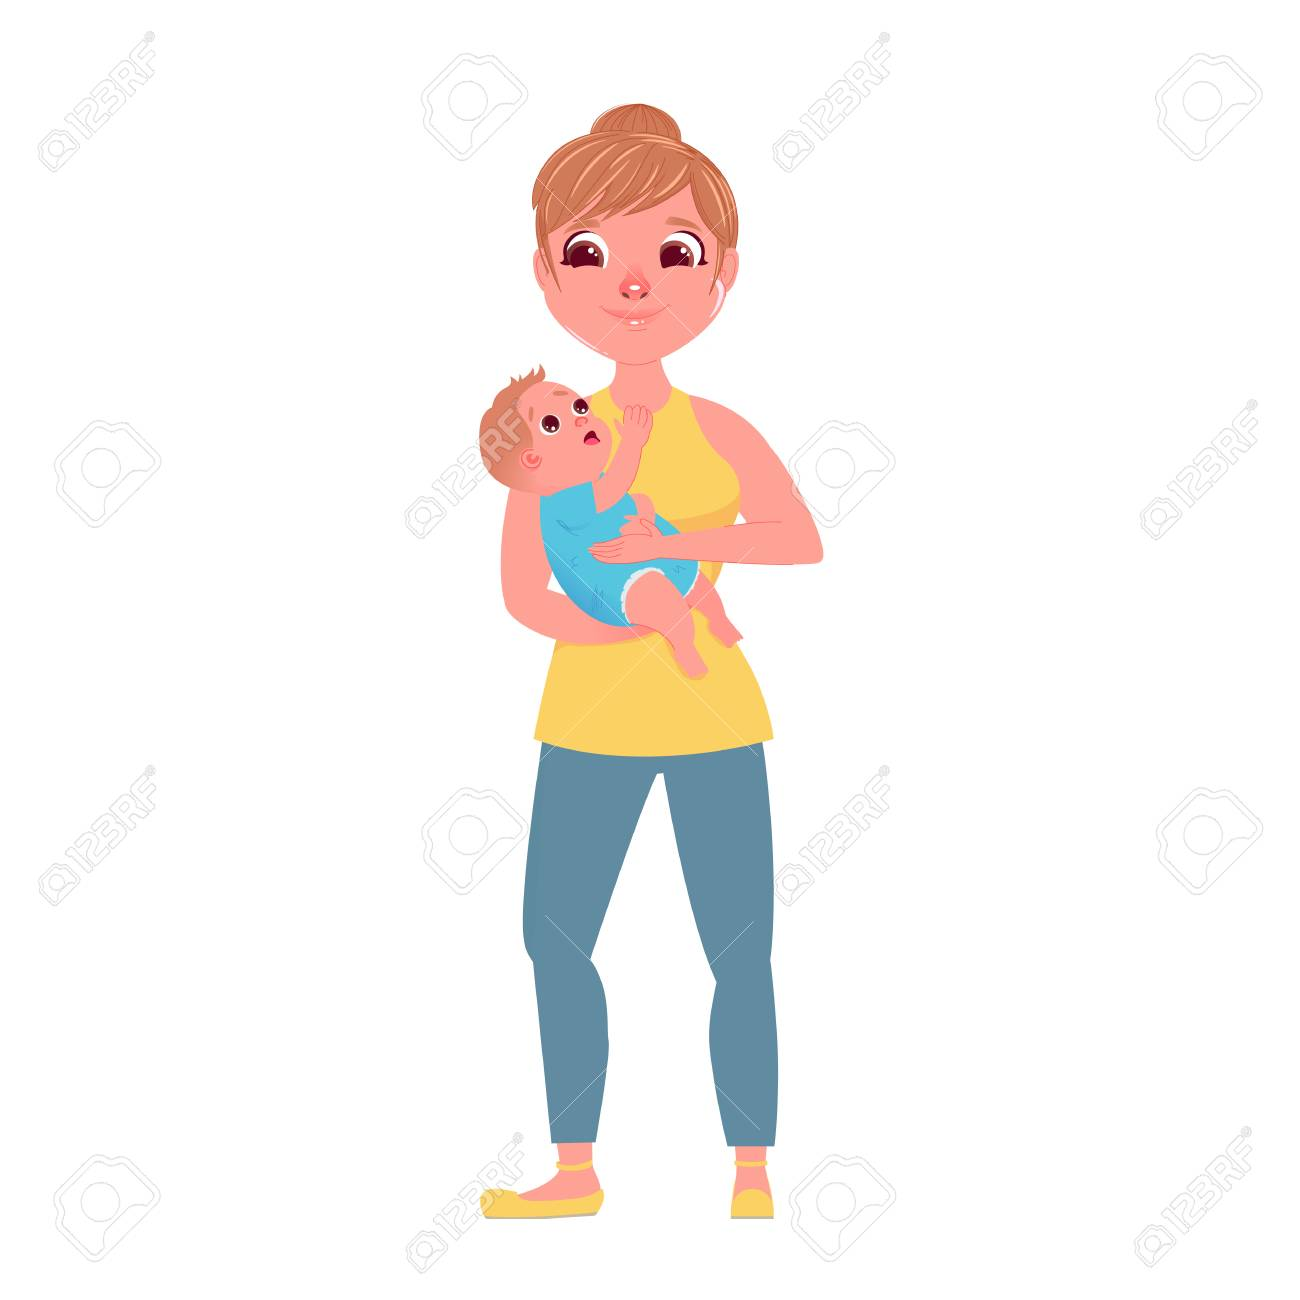 The Mother S Character With A Small Child In Hugs Love From Royalty Free Cliparts Vectors And Stock Illustration Image 105397167